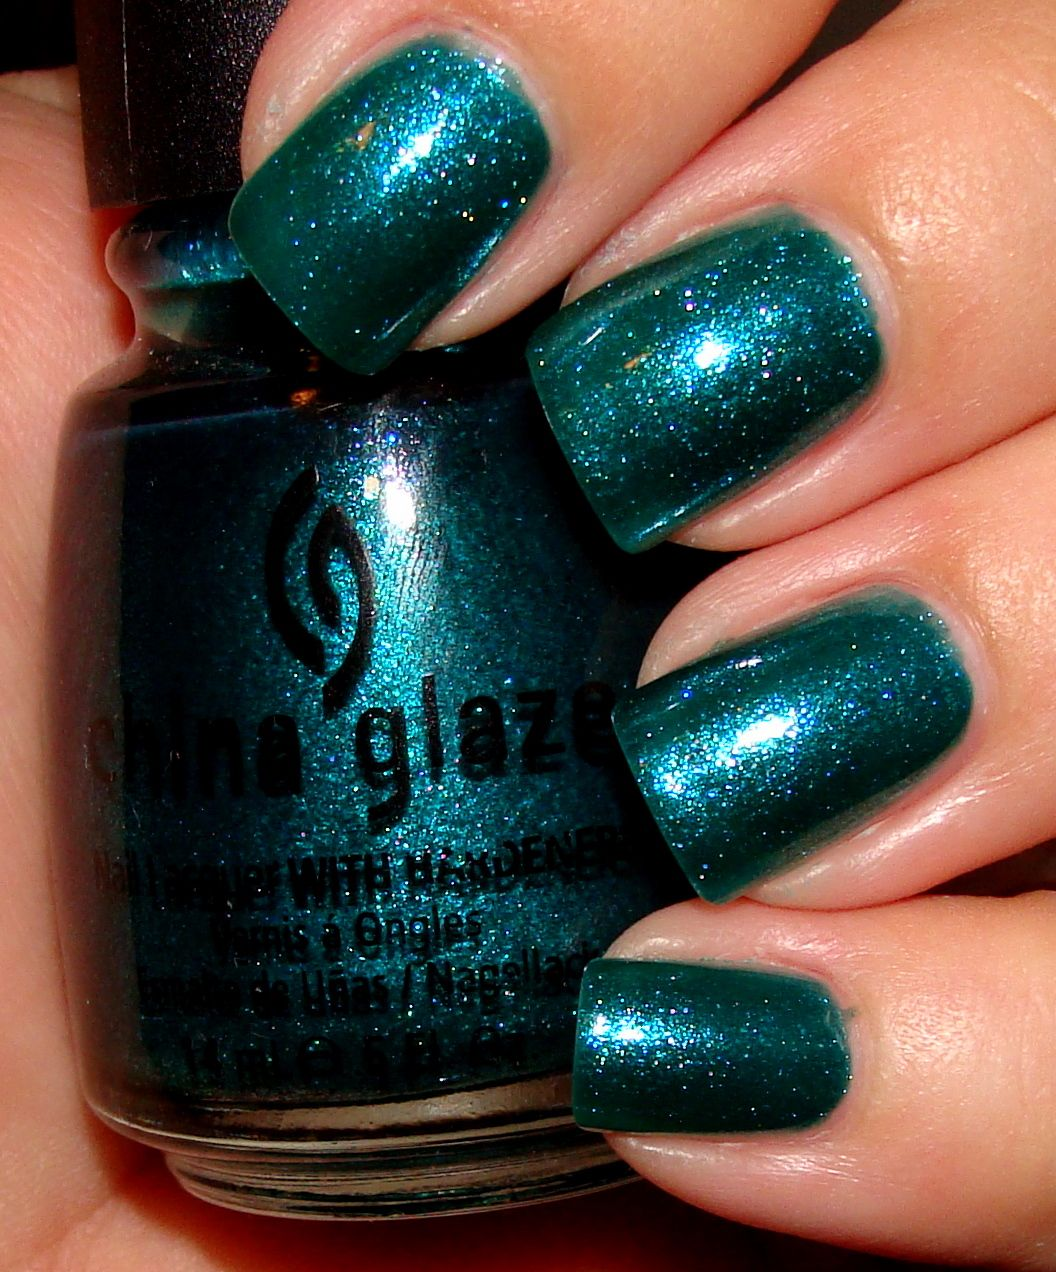 China Glaze Watermelon Rind - no label, swatched - $4.00 | finger ...